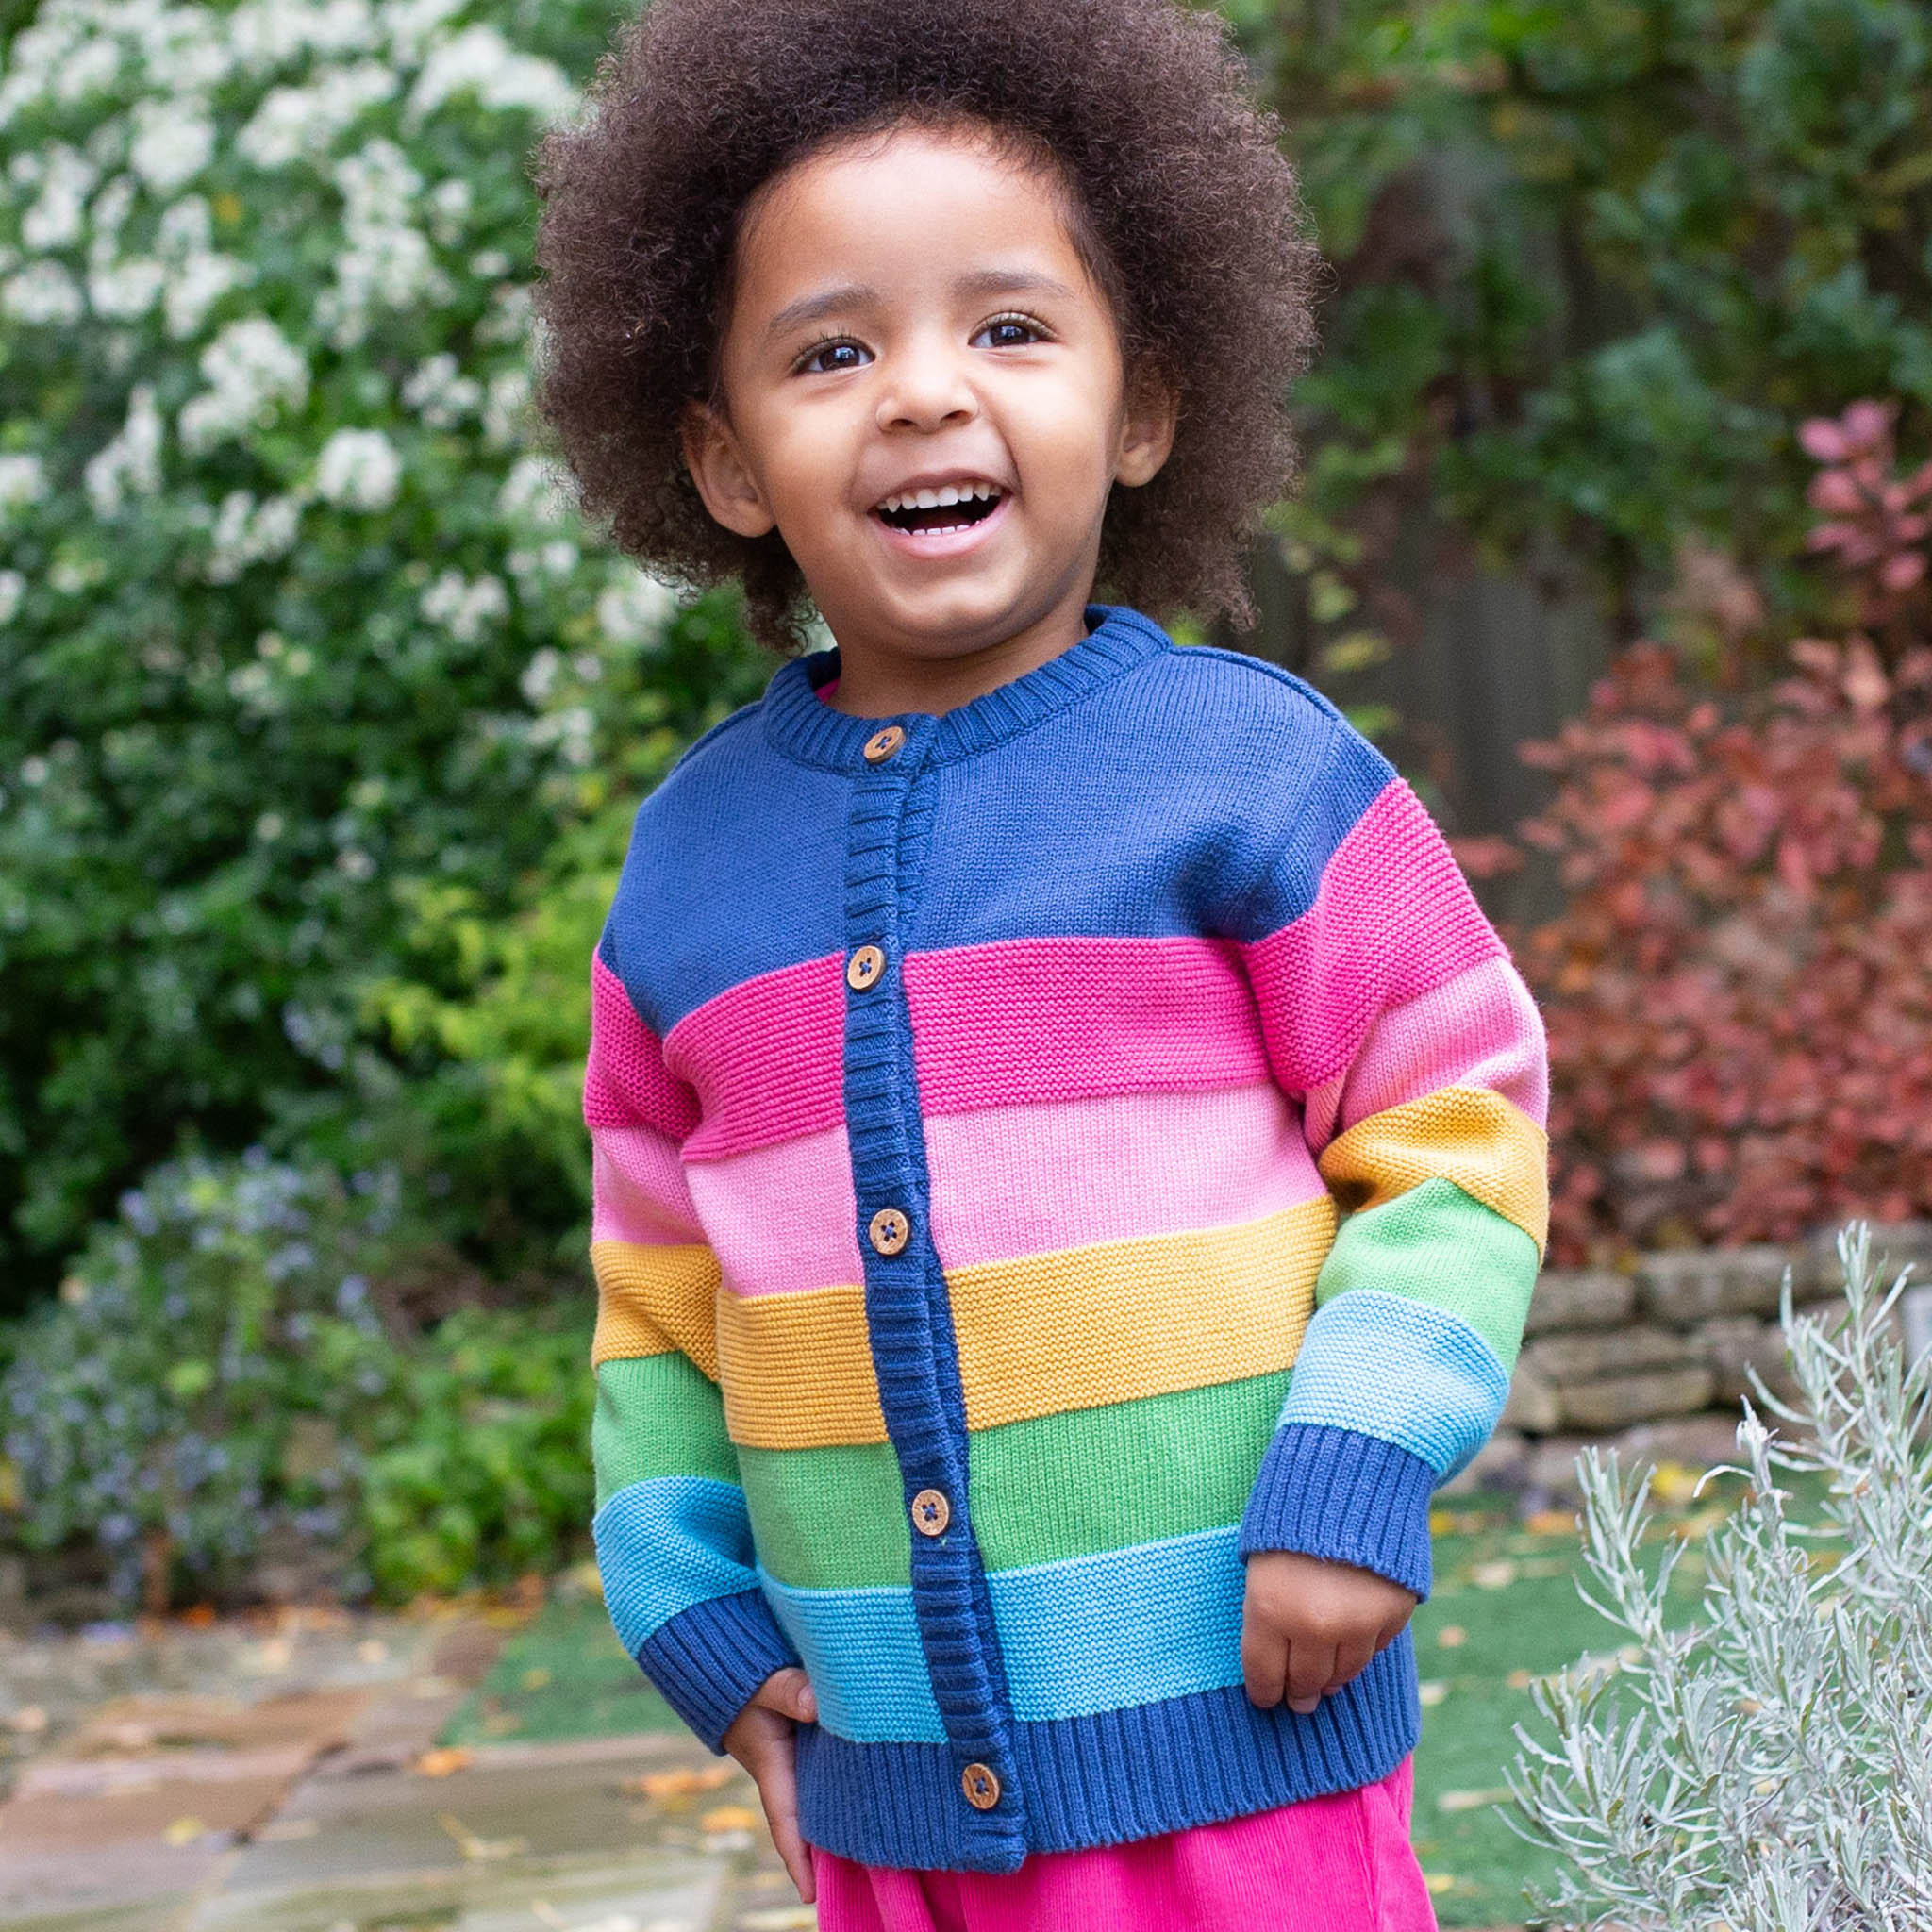 SALE £25.60 Kite Rainbow Cardigan (was £32.00)